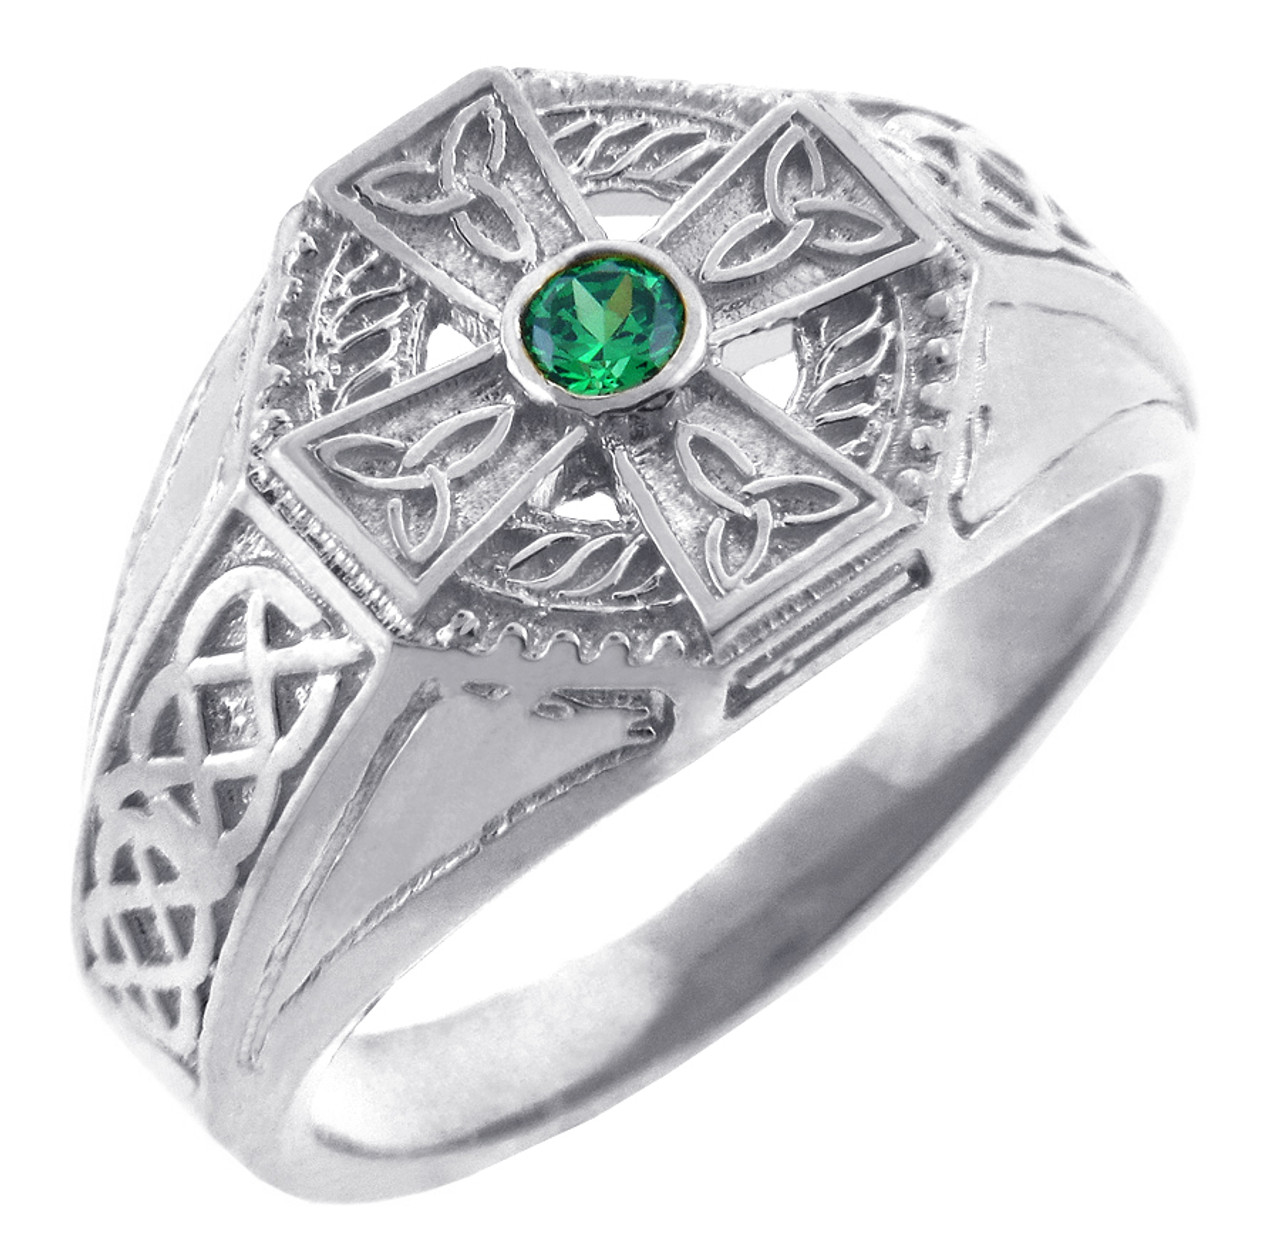 Celtic Band White Gold Celtic Ring with Emerald